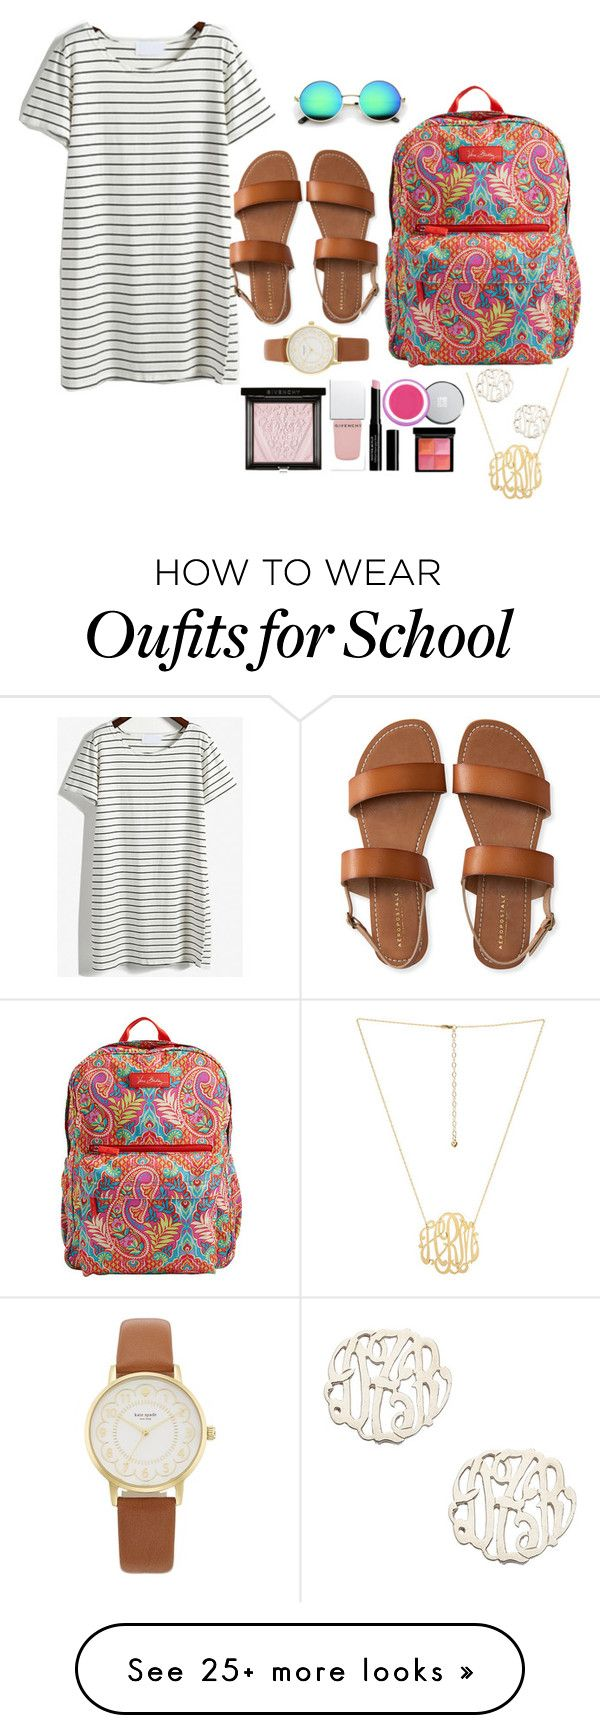 """""""CONTEST ENTRY///LAST DAY OF SCHOOL"""" by sydneerees on Polyvore featuring Vera Bradley, Aéropostale, Kate Spade, Givenchy, Danielle Stevens and dreamfirstweekofsummer"""